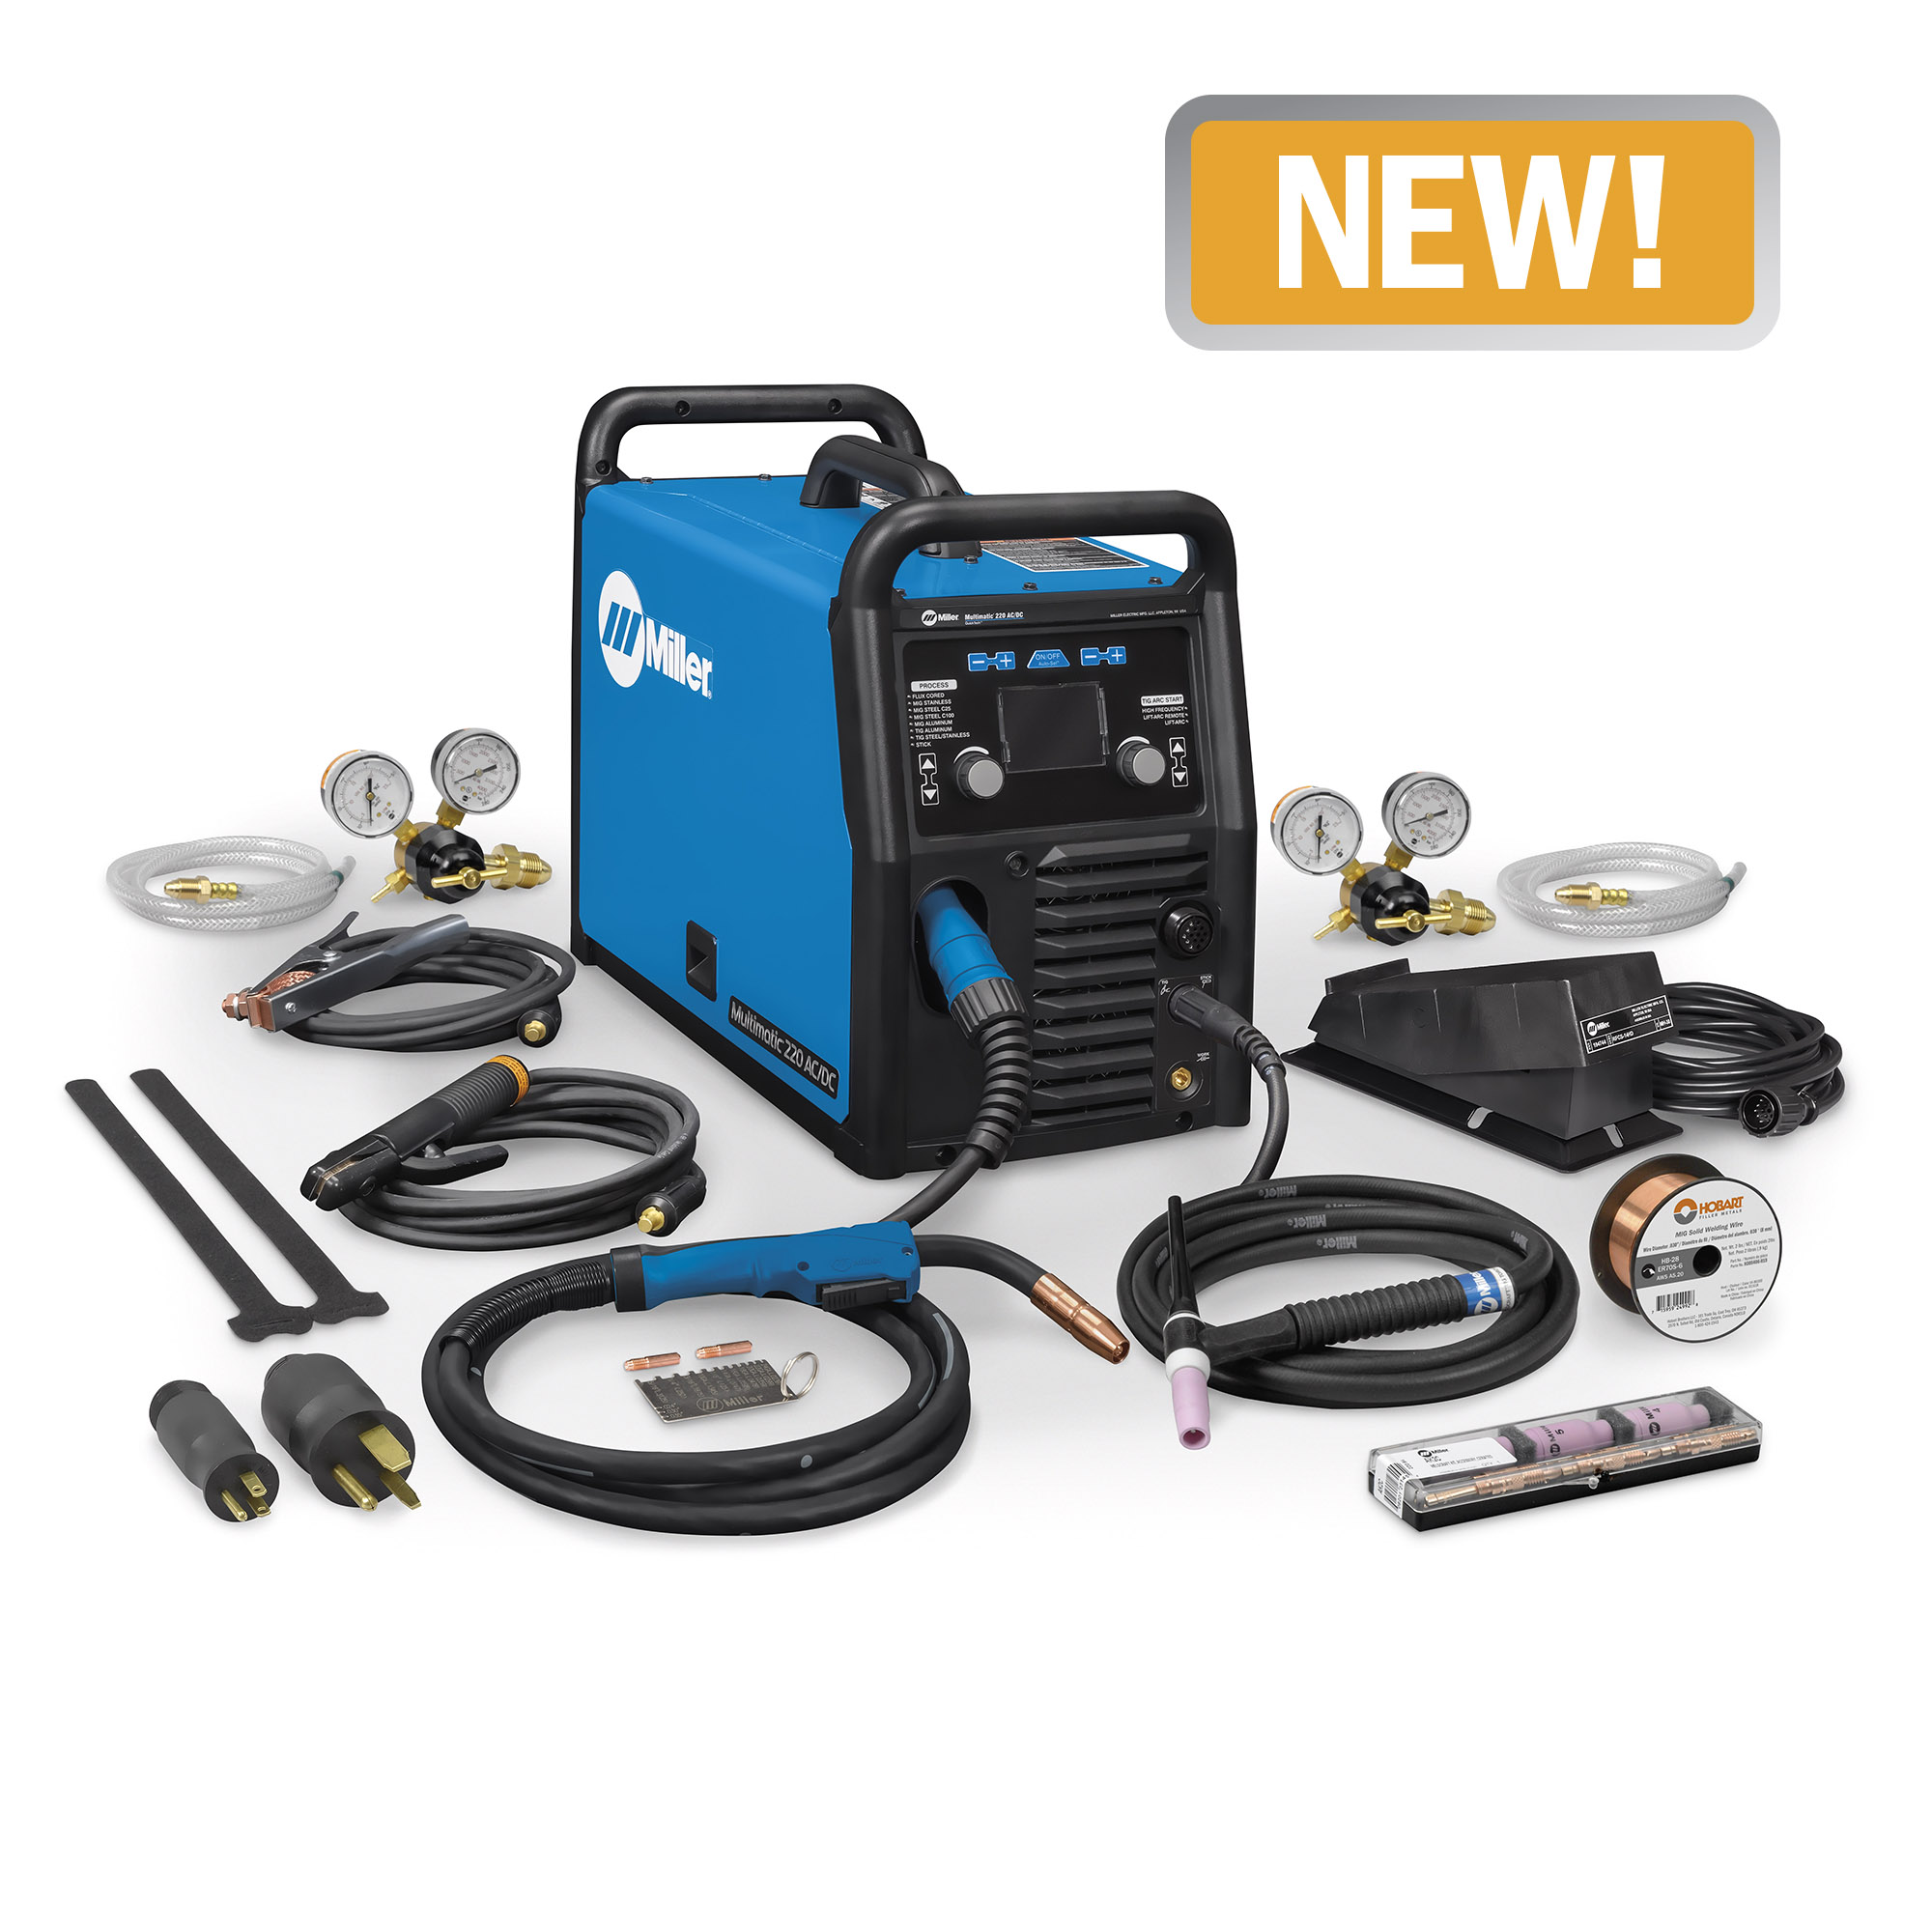 medium resolution of miller multimatic 220 ac dc multiprocess welder with accessories